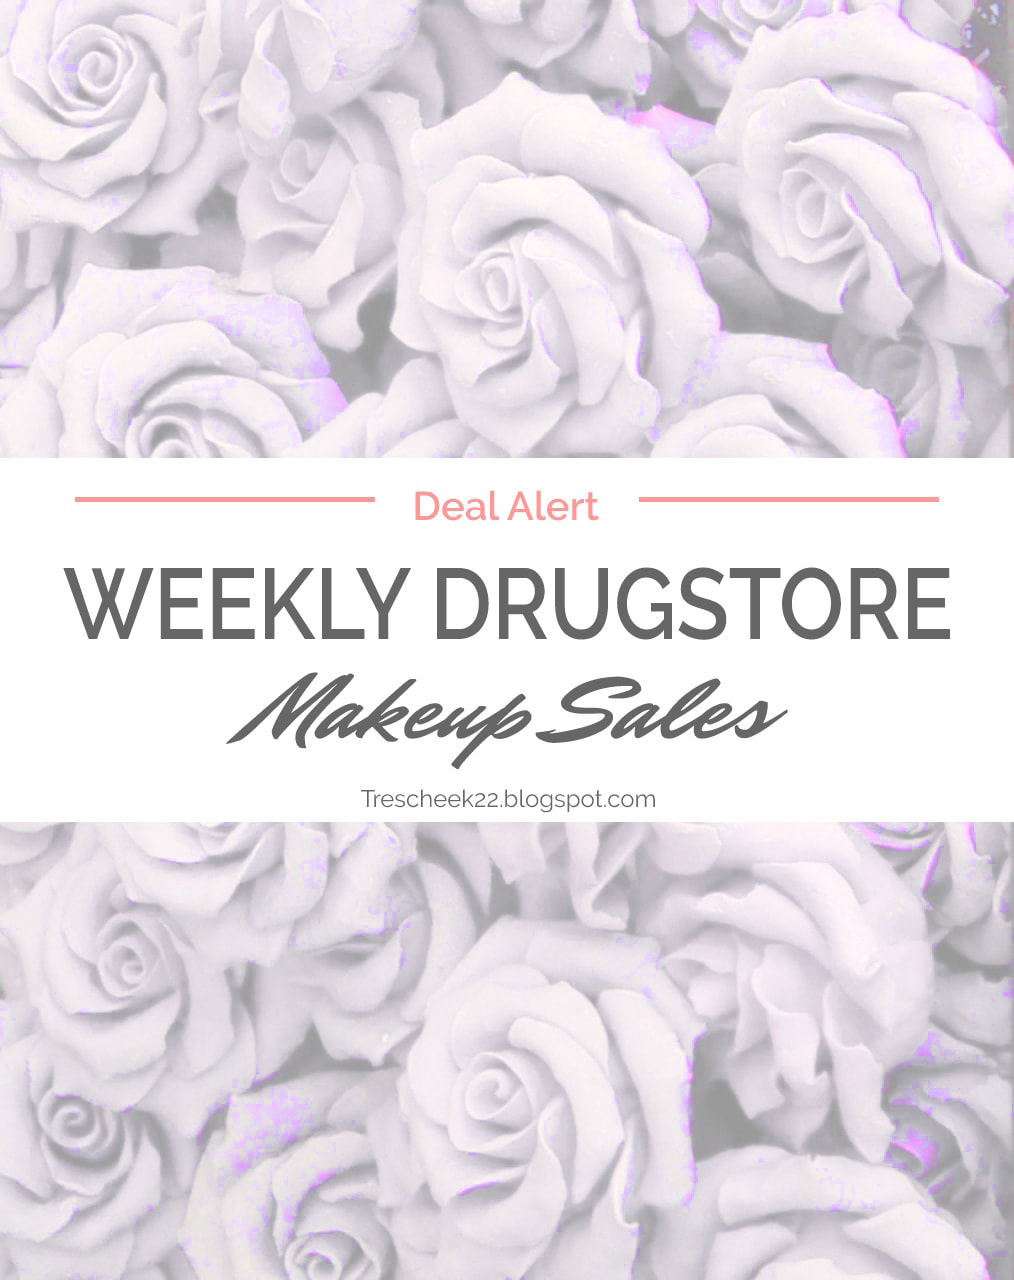 Deal Alert: Weekly Drugstore Makeup Sales